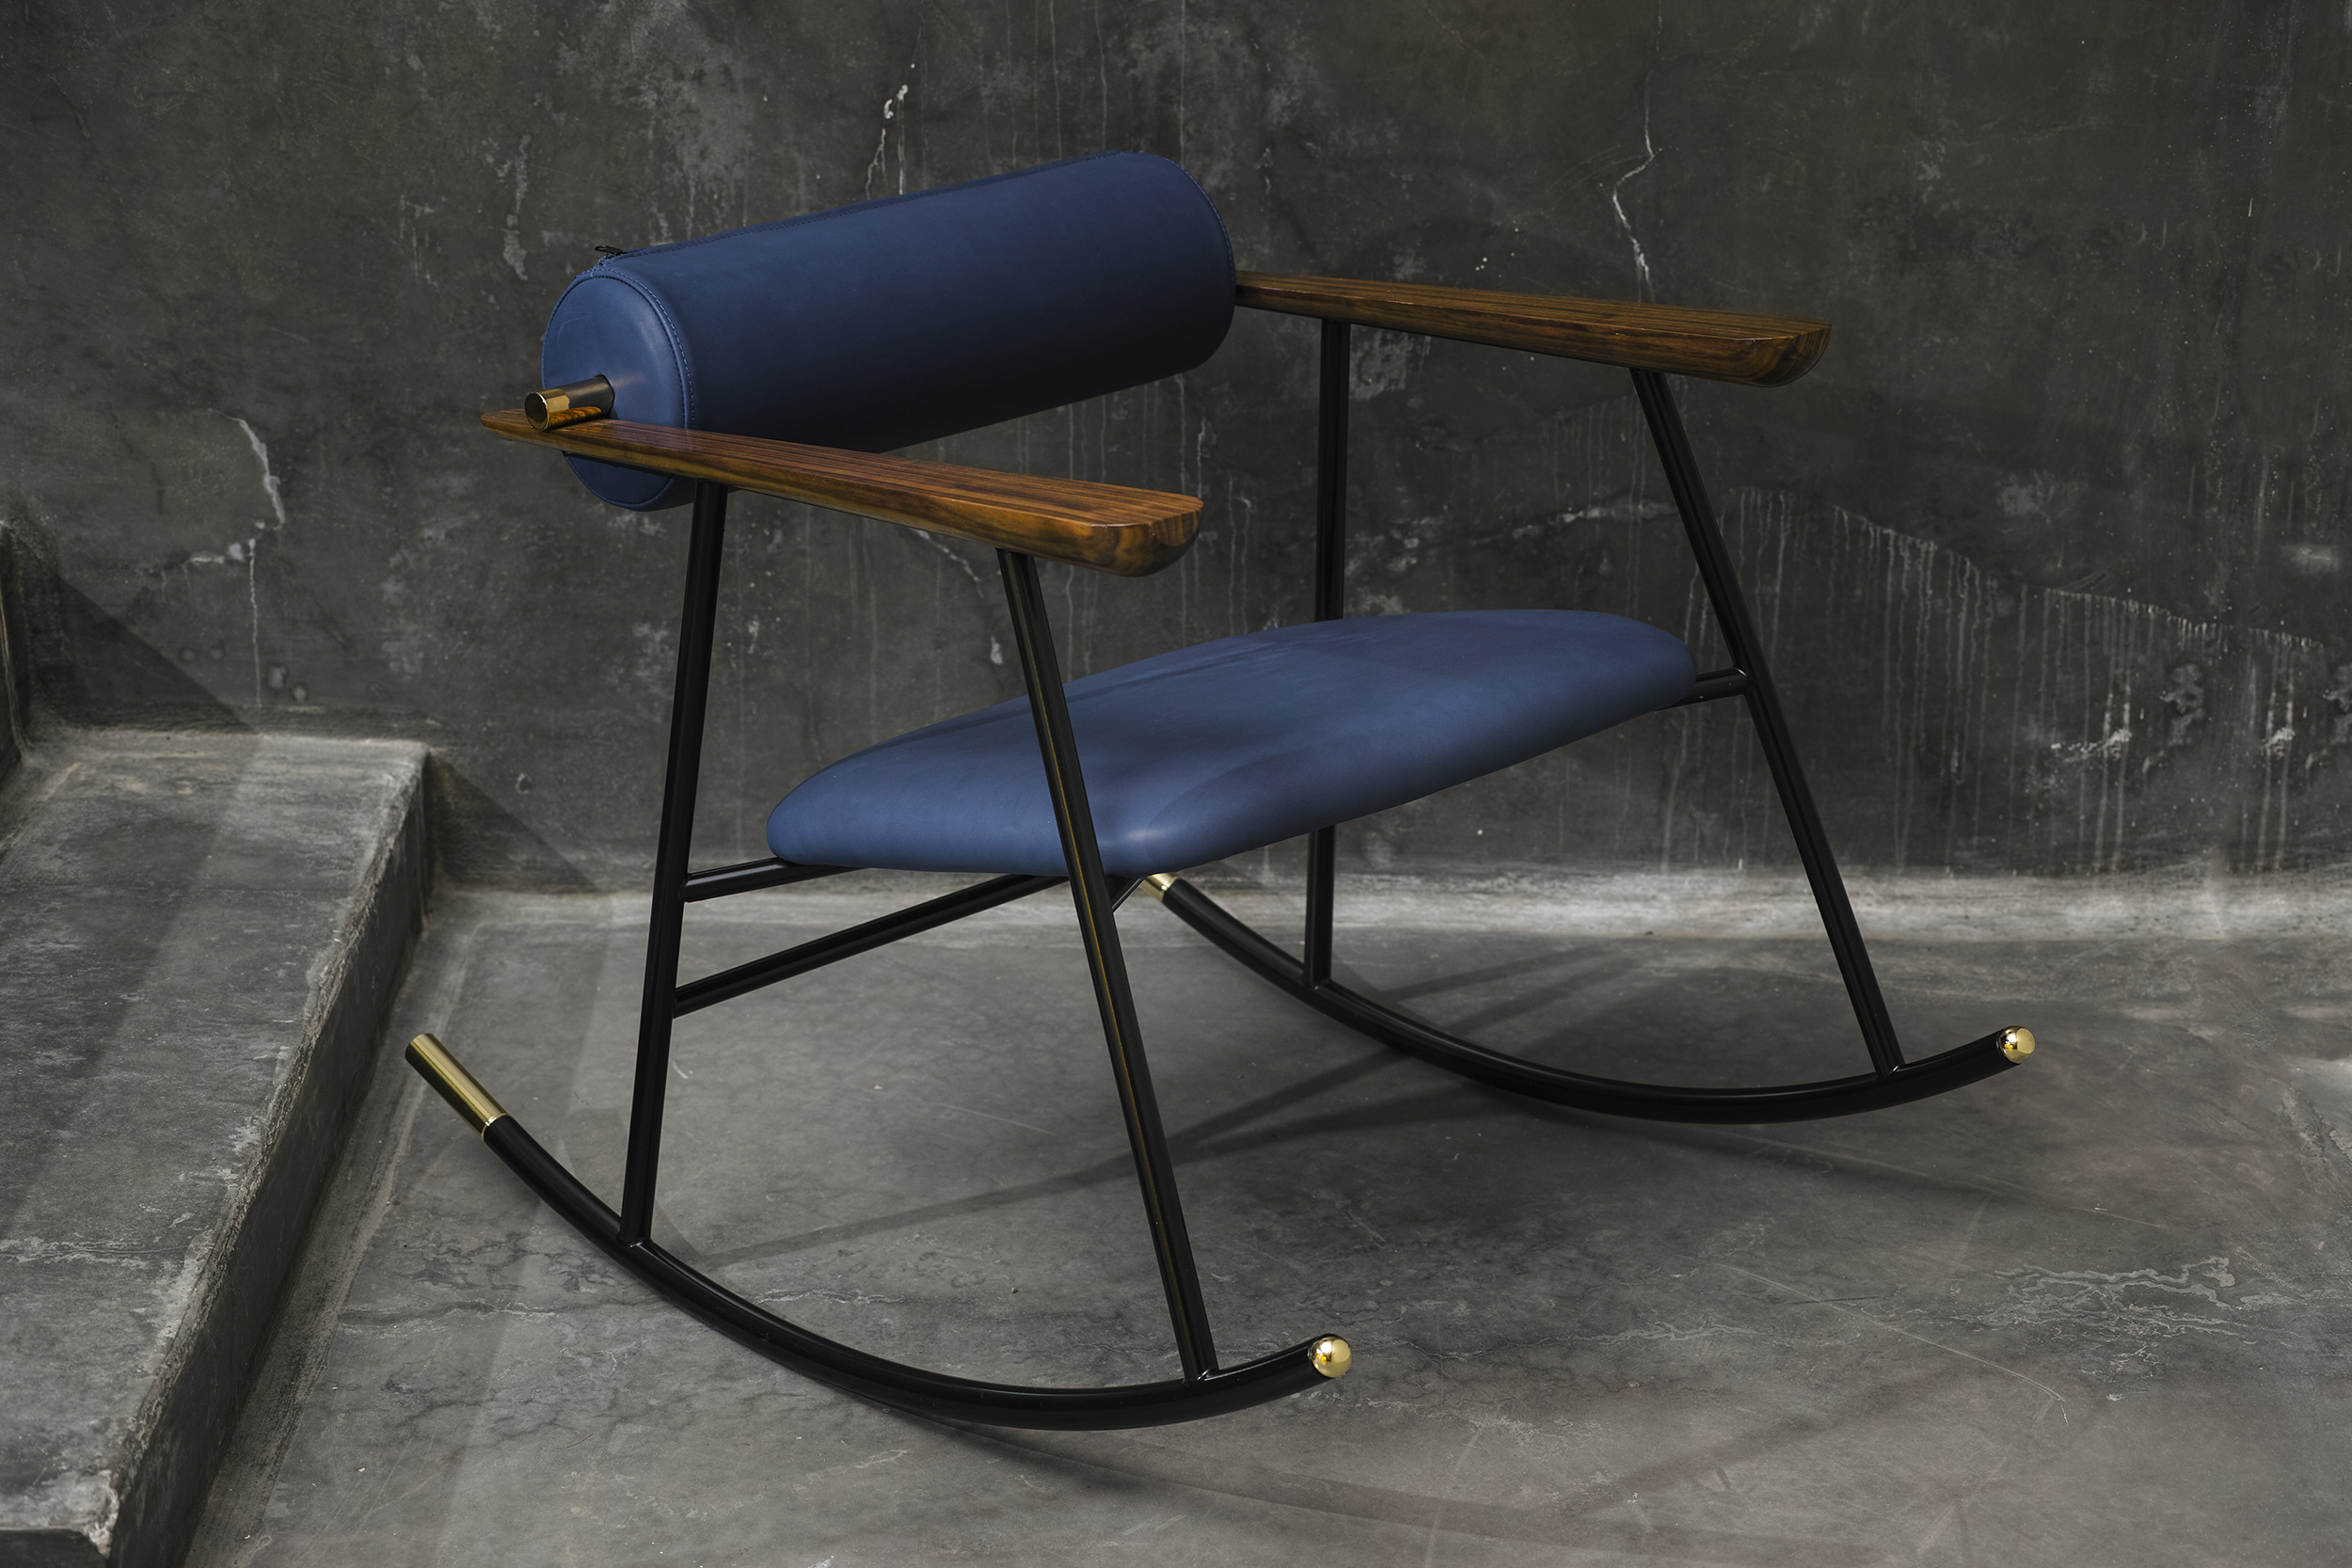 Loulou Rocking chair by david/nicolas, image courtesy of Joy Mardini Design Gallery